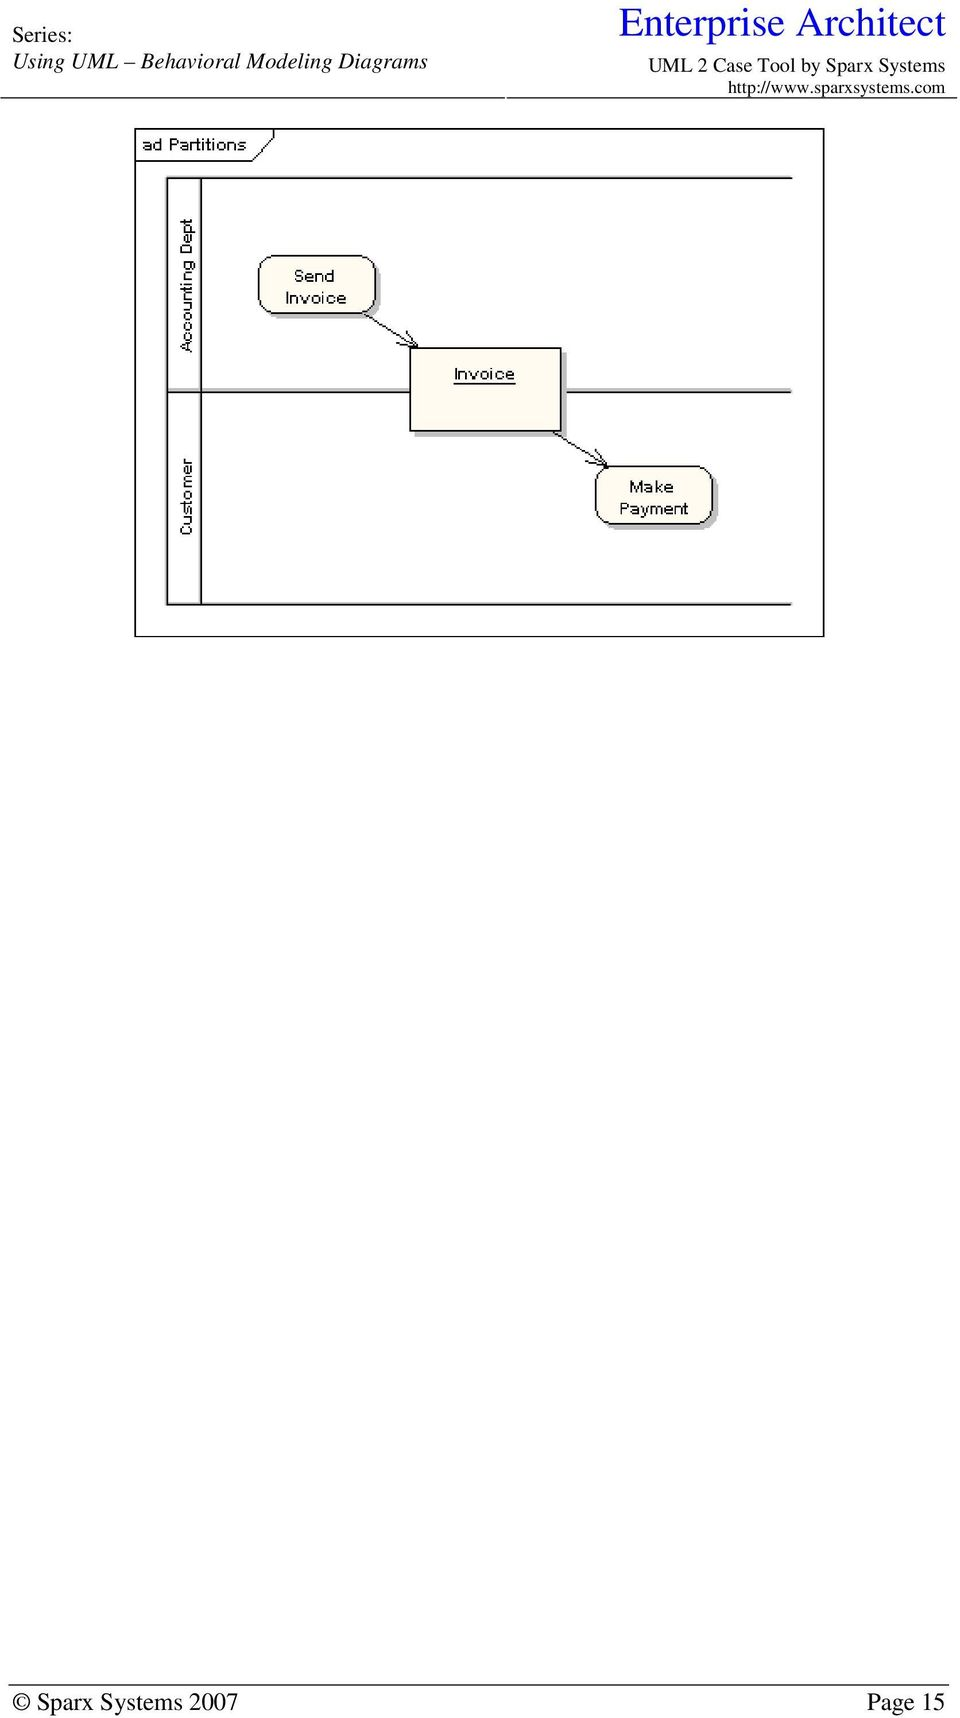 Using Uml Part Two Behavioral Modeling Diagrams Pdf An Example Of State Machine Diagram For A Bank Atm 16 Models The Behavior Single Object Specifying Sequence Events Goes Through During